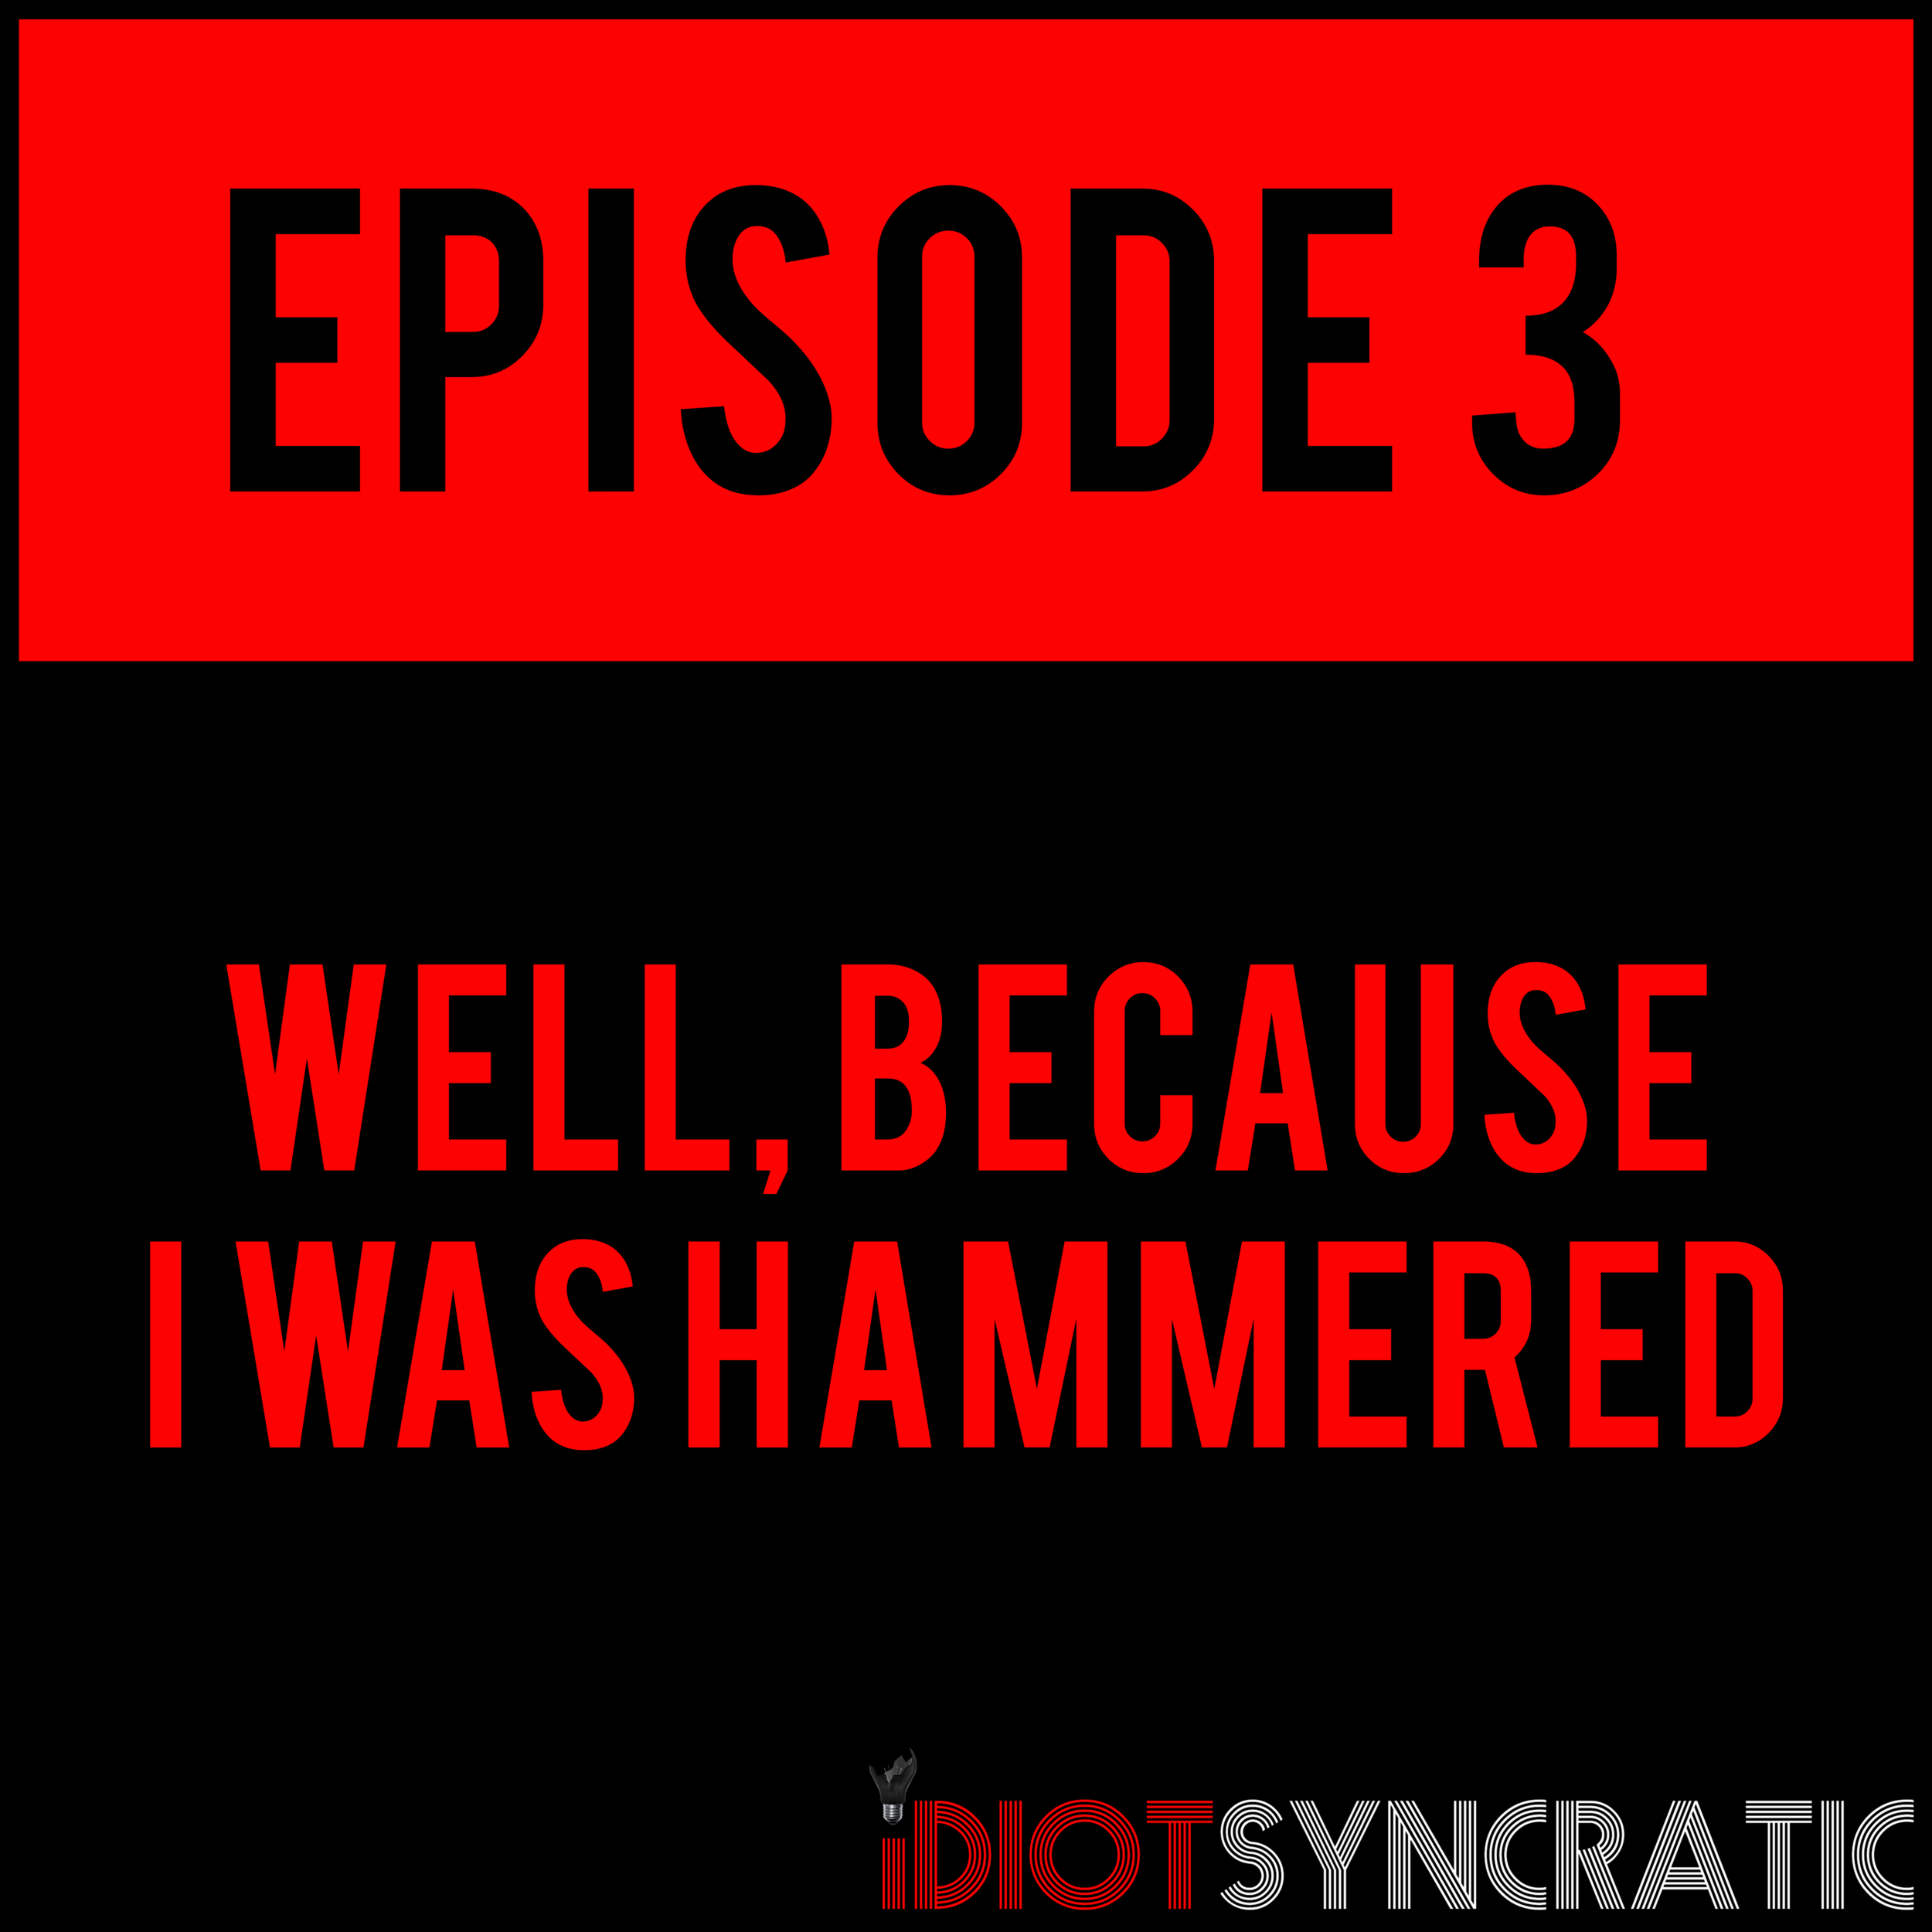 EPISODE 3 - WELL, BECAUSE I WAS HAMMERED - EPISODE 3 is out now!